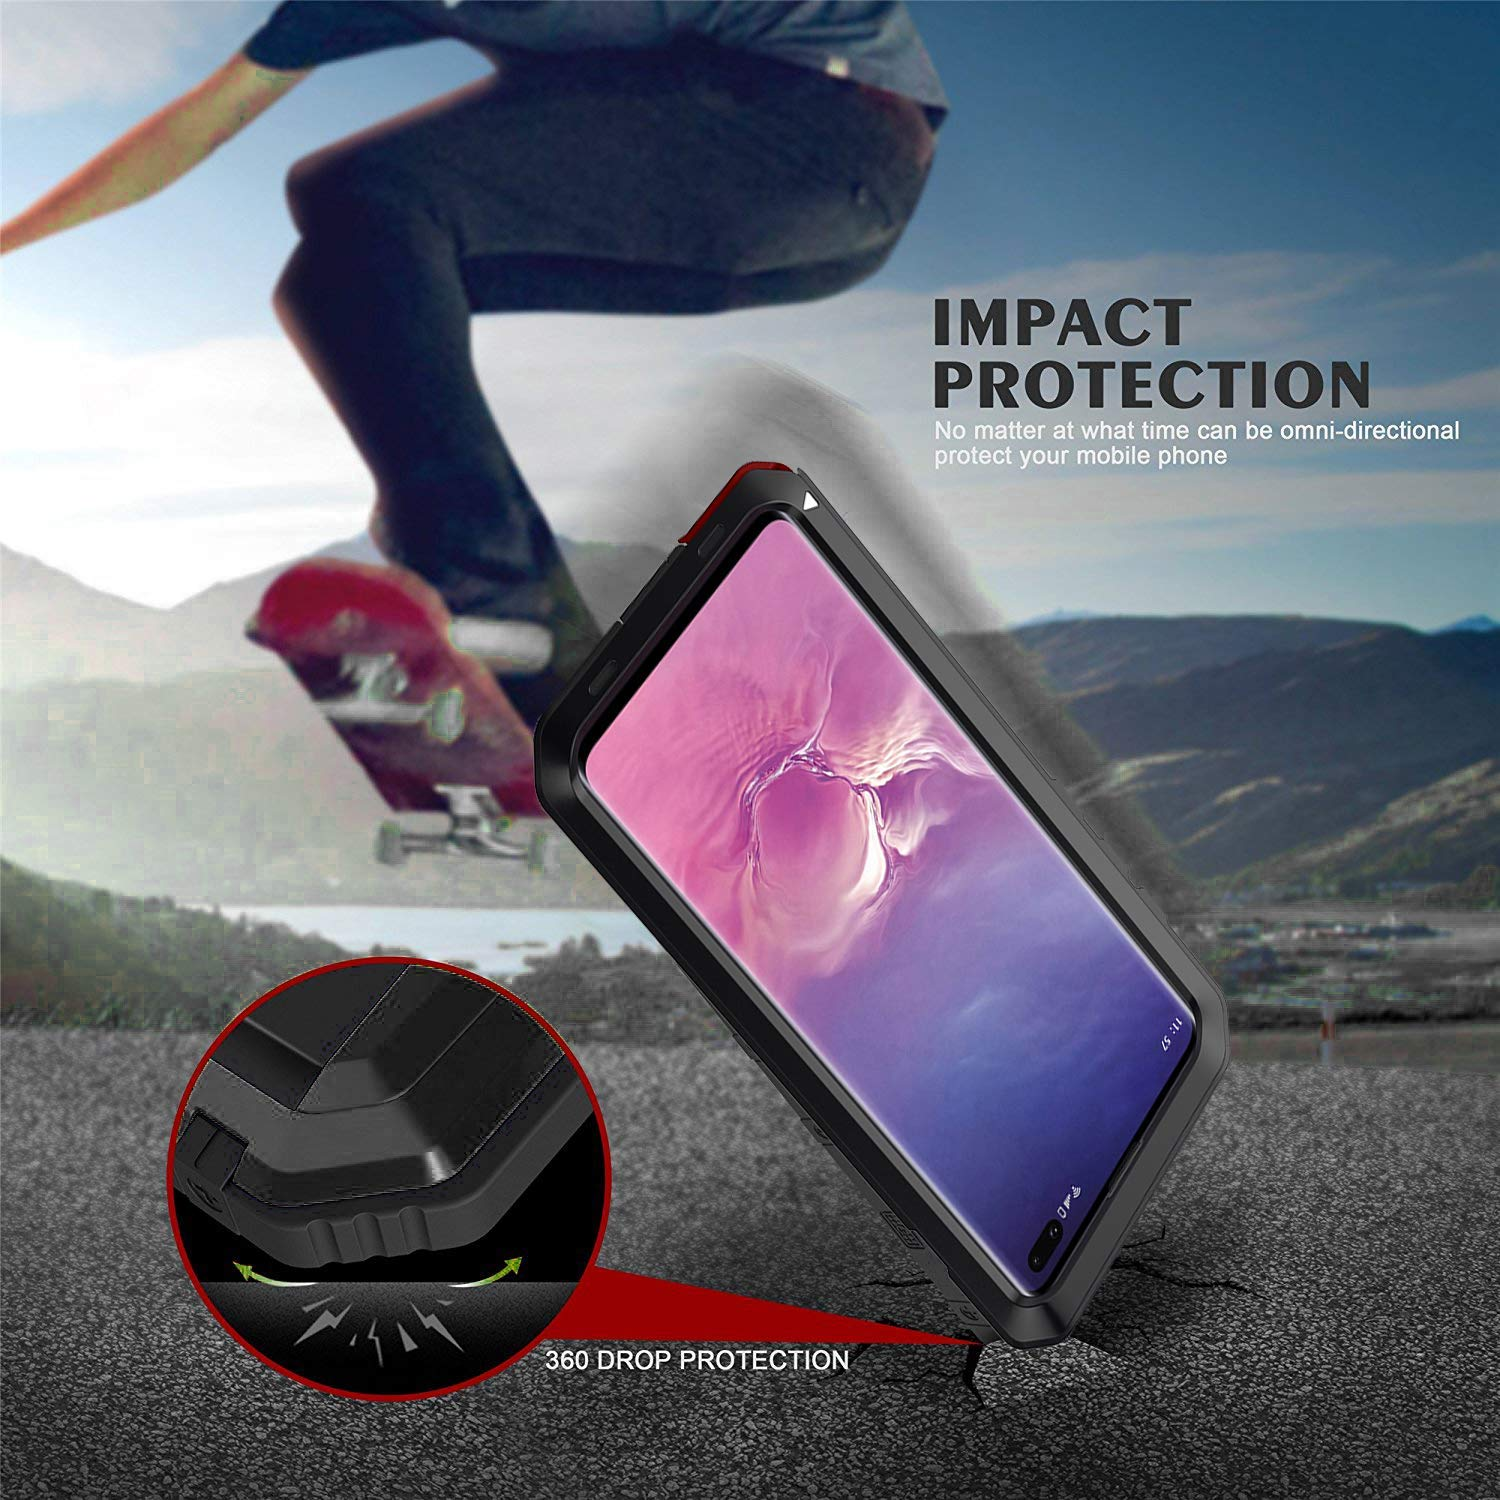 Case Heavy Duty Shockproof Dirtproof Waterproof Cover For Samsung Galaxy S8